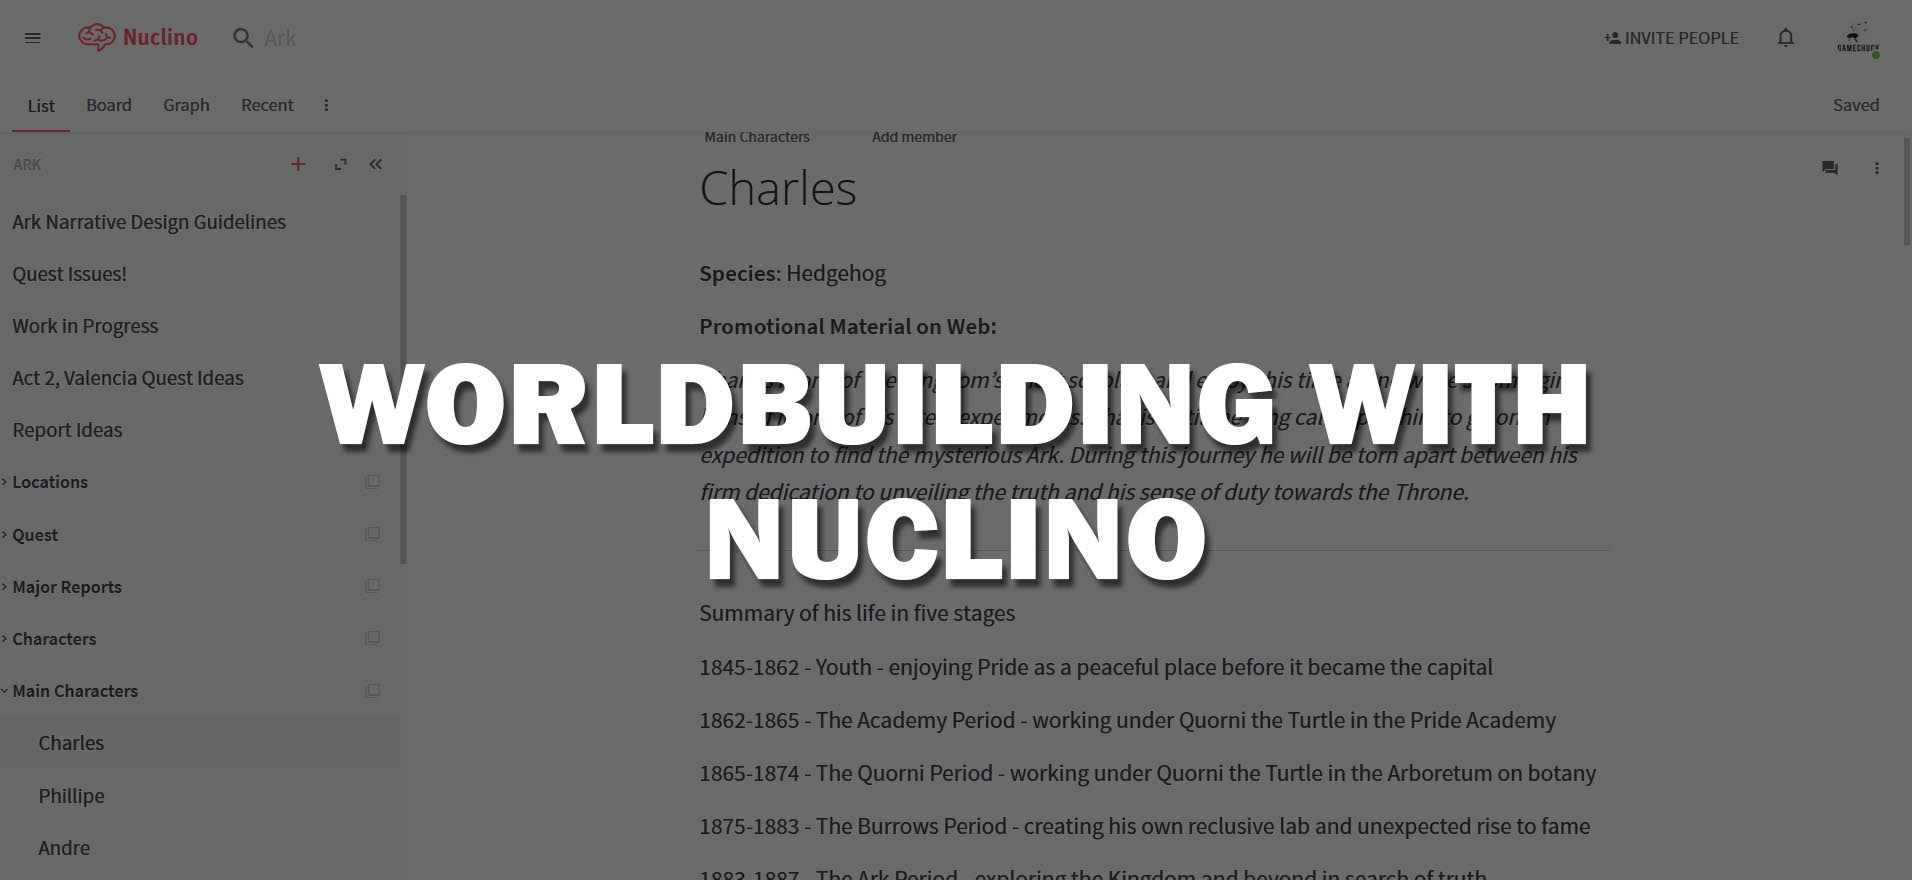 Worldbuilding with Nuclino